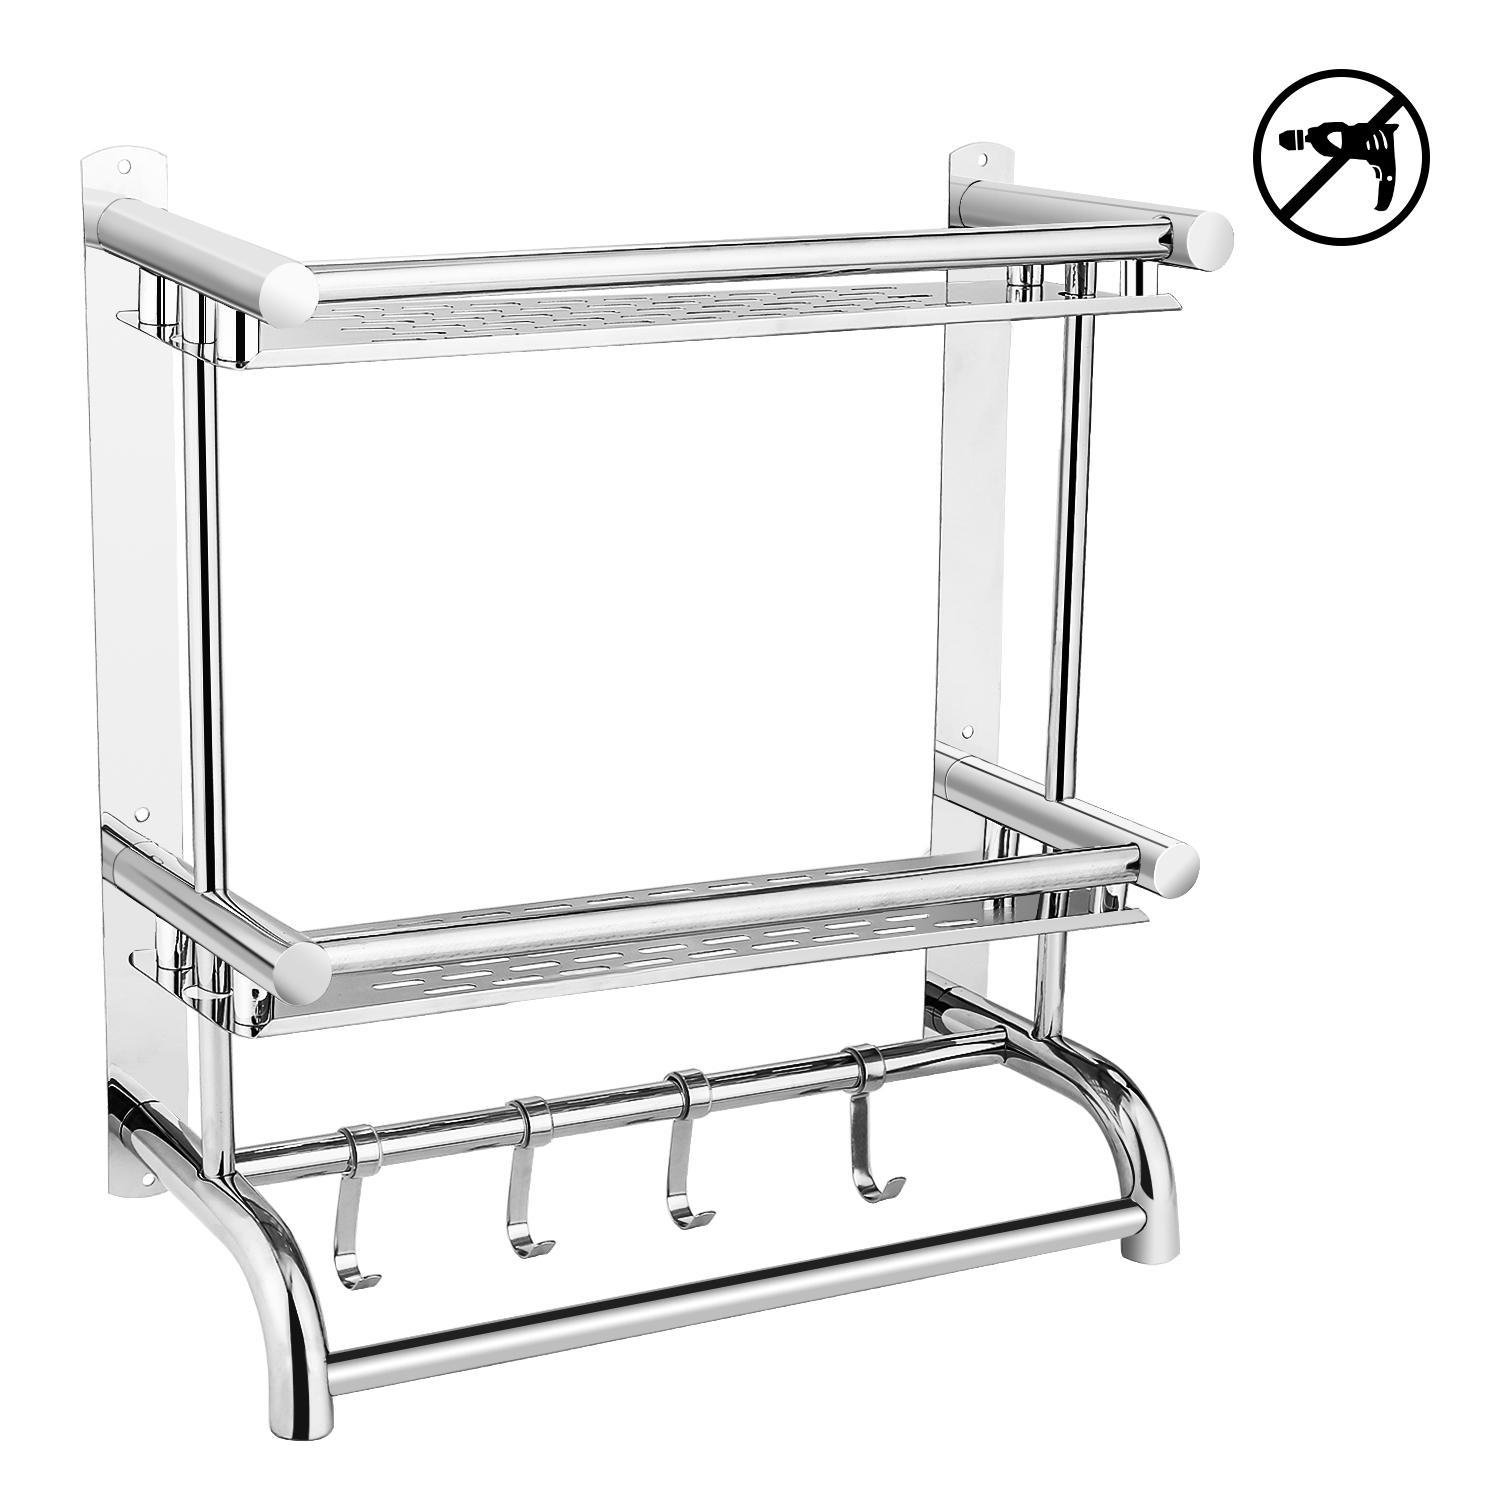 Evokem Bathroom Towel Racks, 3-Tier Stainless Steel Wall Mount Towel Rack Hanger Shelf Organizer, Free of Nail Drilling Installation & Drill Drilling Installation by Evokem